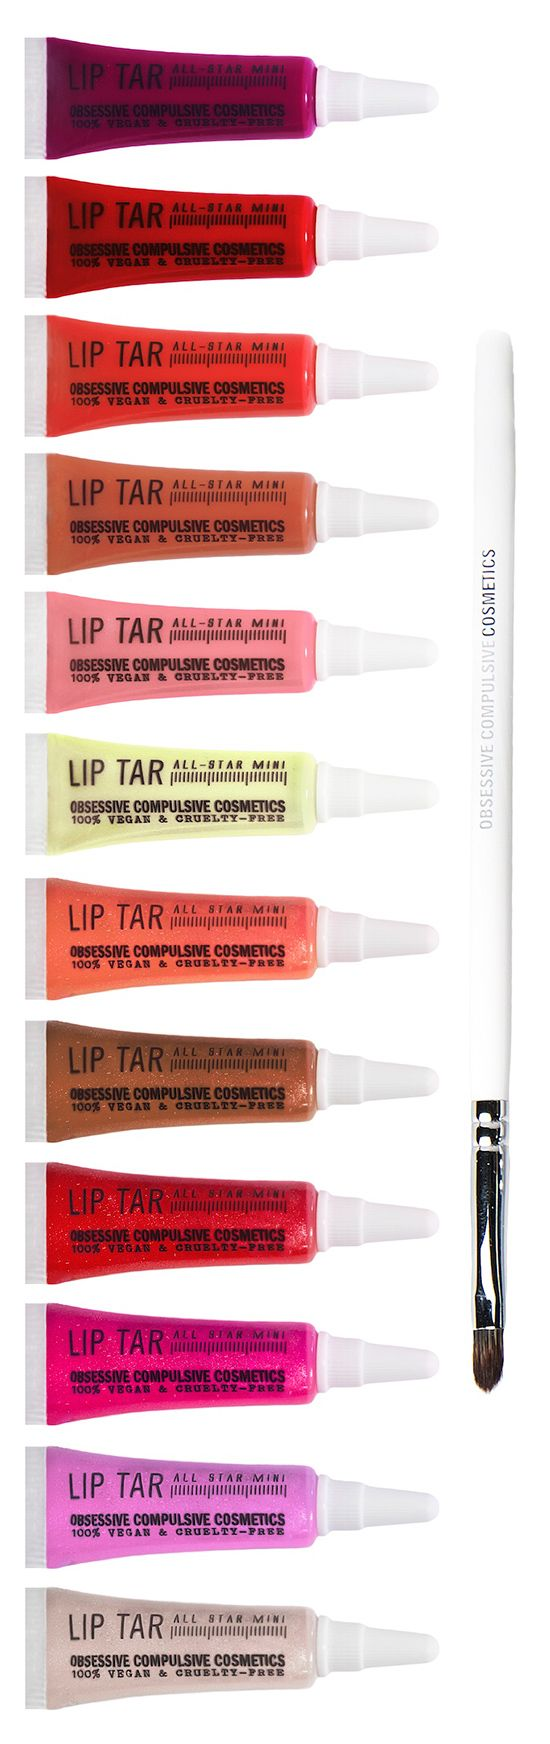 OCC Mini Lip Tar Kit --- words cannot express how excited i am about this collection of mini size!!!